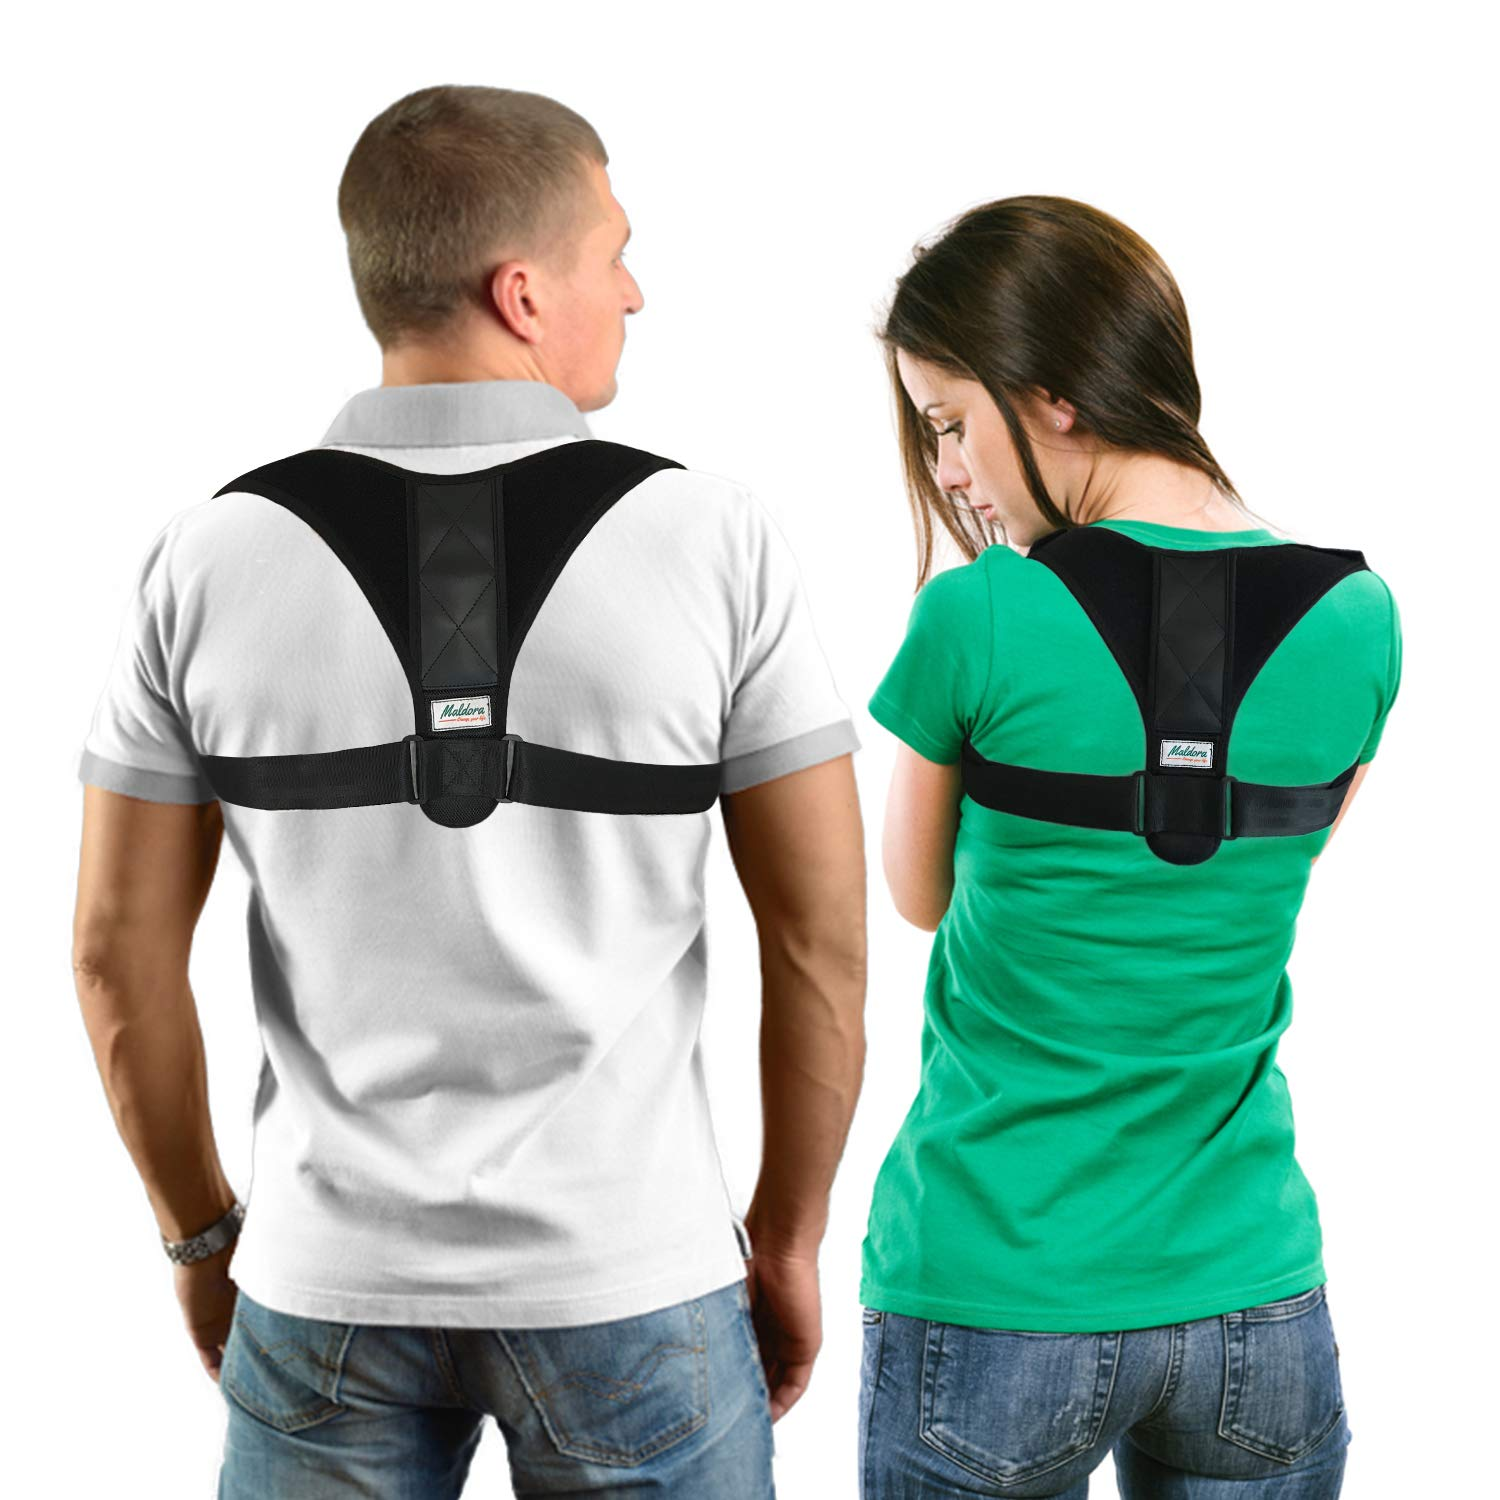 Back Support Brace Yotown Posture Corrector Corrector of Posture with Straight Support Ultrafine Breathable Bandage of Elastic in The Shoulder of The Shoulder for Men and Women